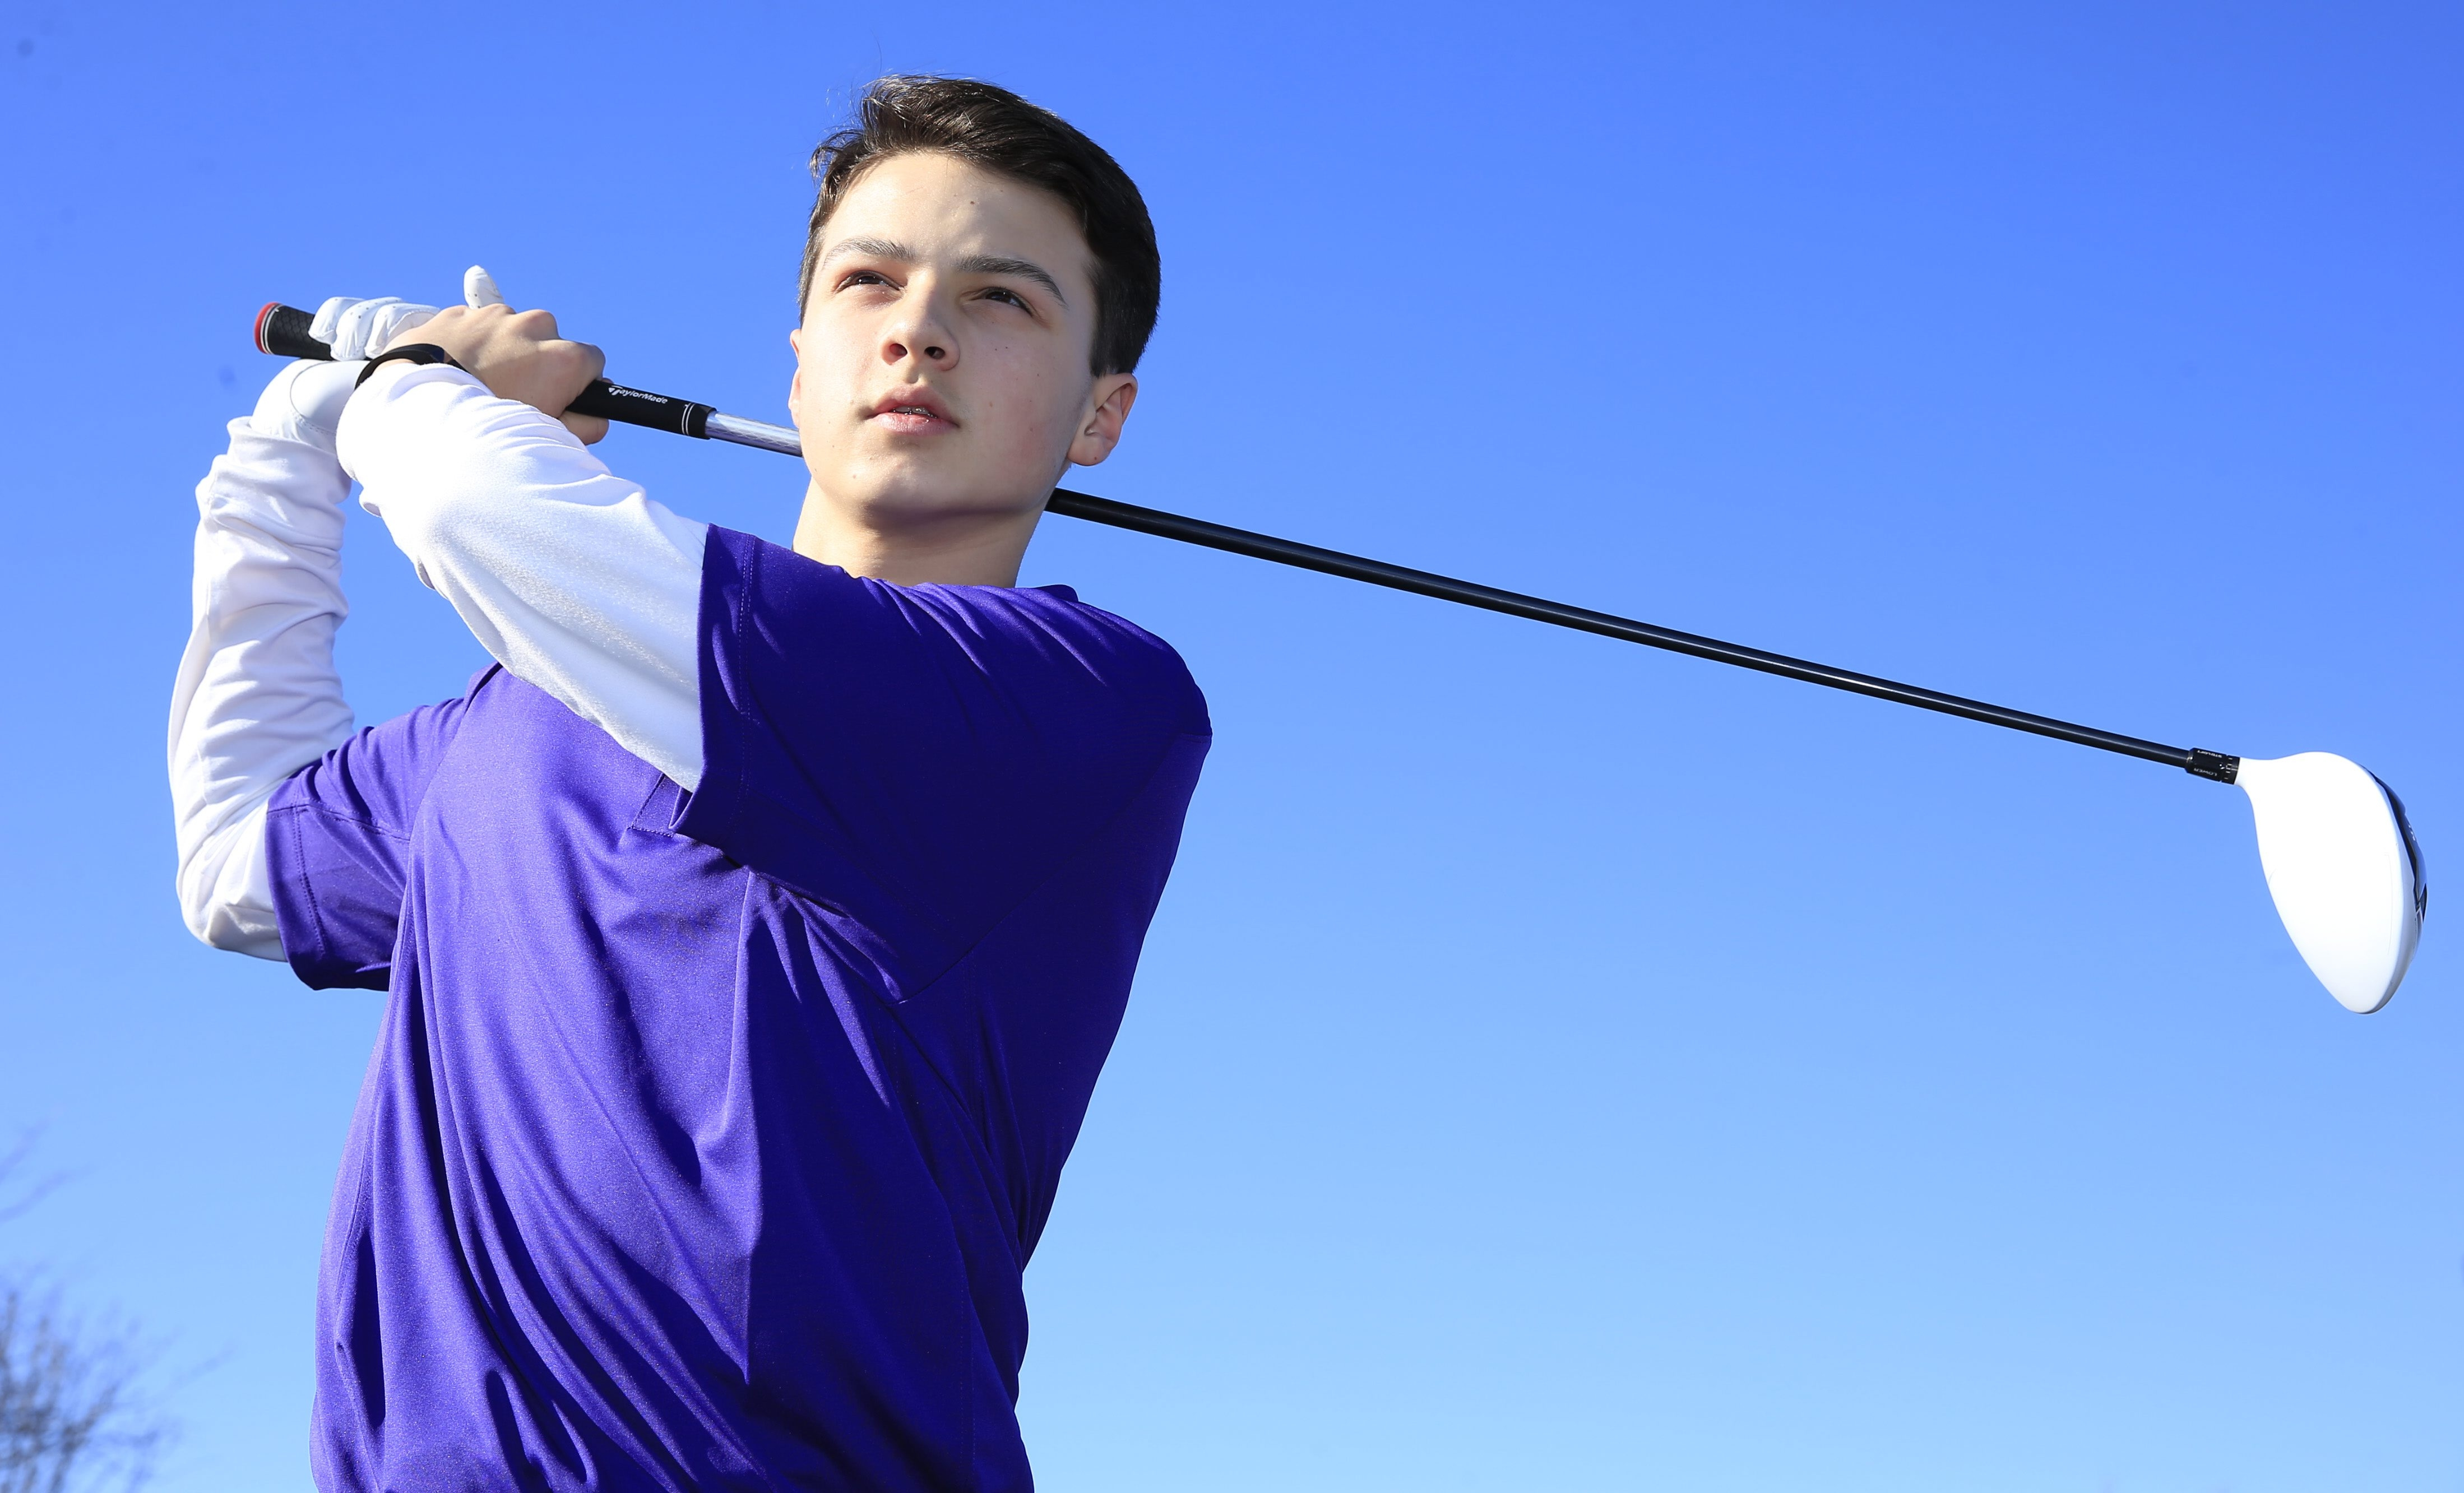 Andrew LaCongo, 15, of Holland typically drives the ball between 250 and 270 yards. (Harry Scull Jr./Buffalo News)